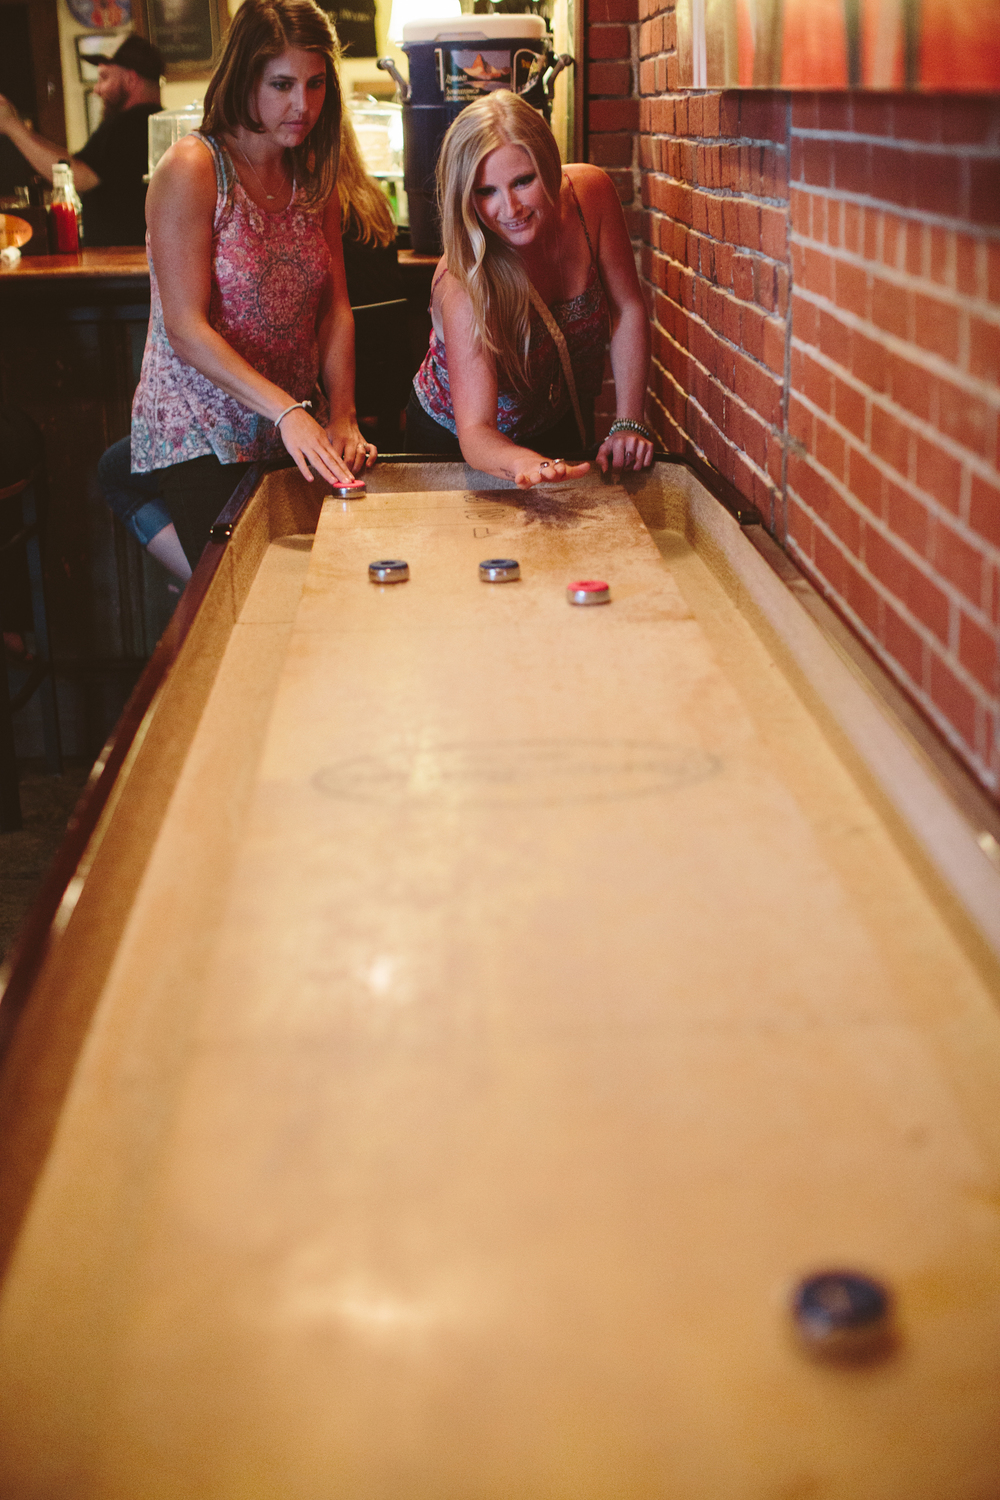 AshevilleFolk - Greenville, South Carolina City Guide: The Velo Fellow. Shuffleboard.